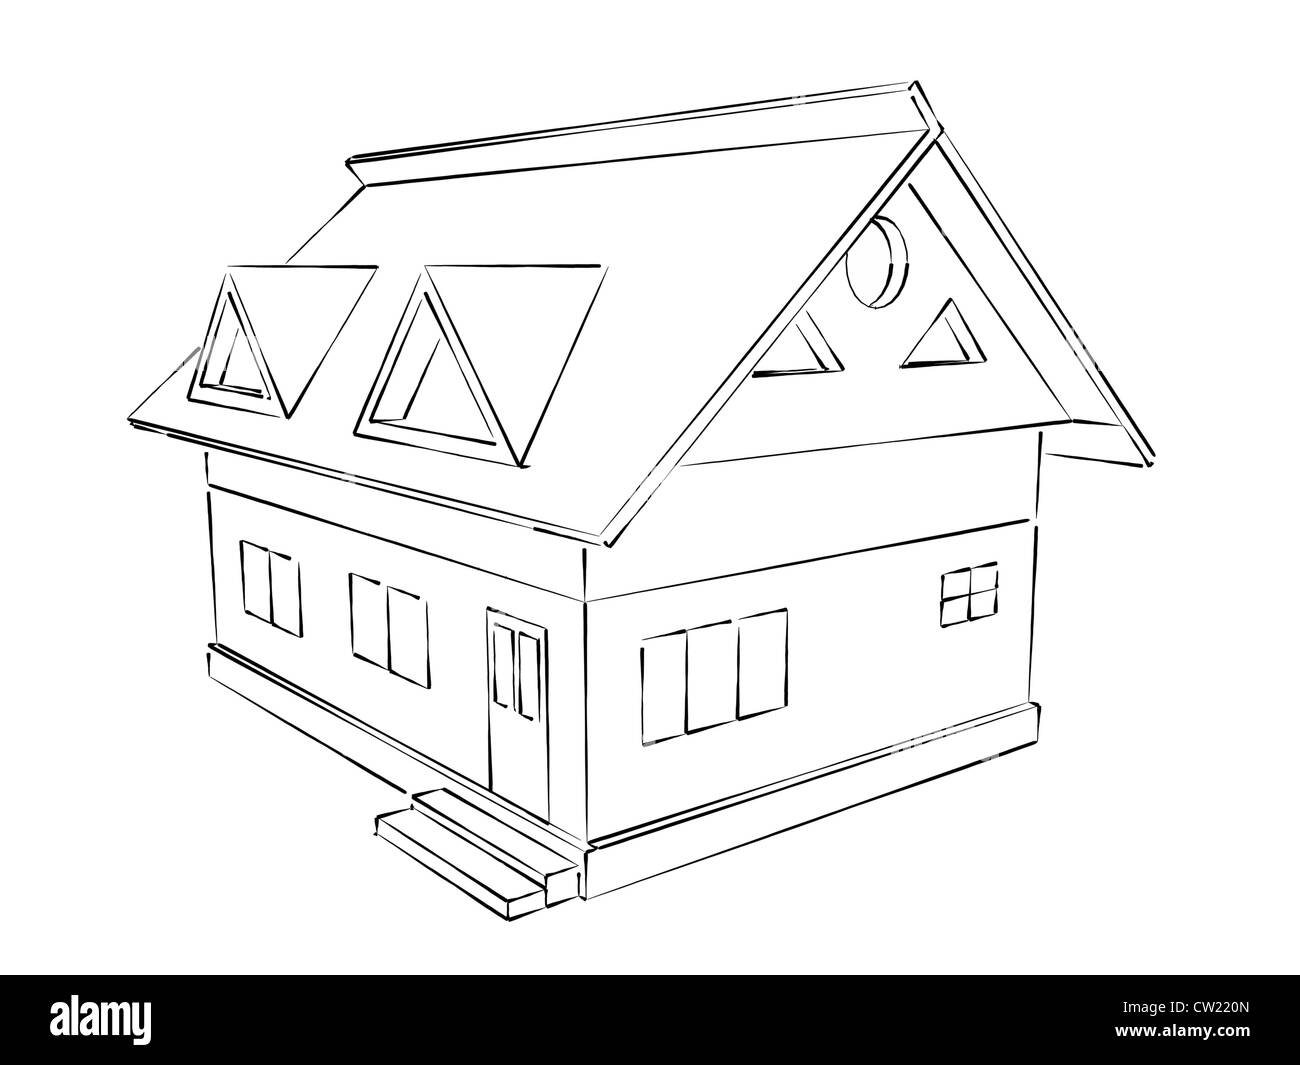 Perfect Simple Sketch Illustration Of A House